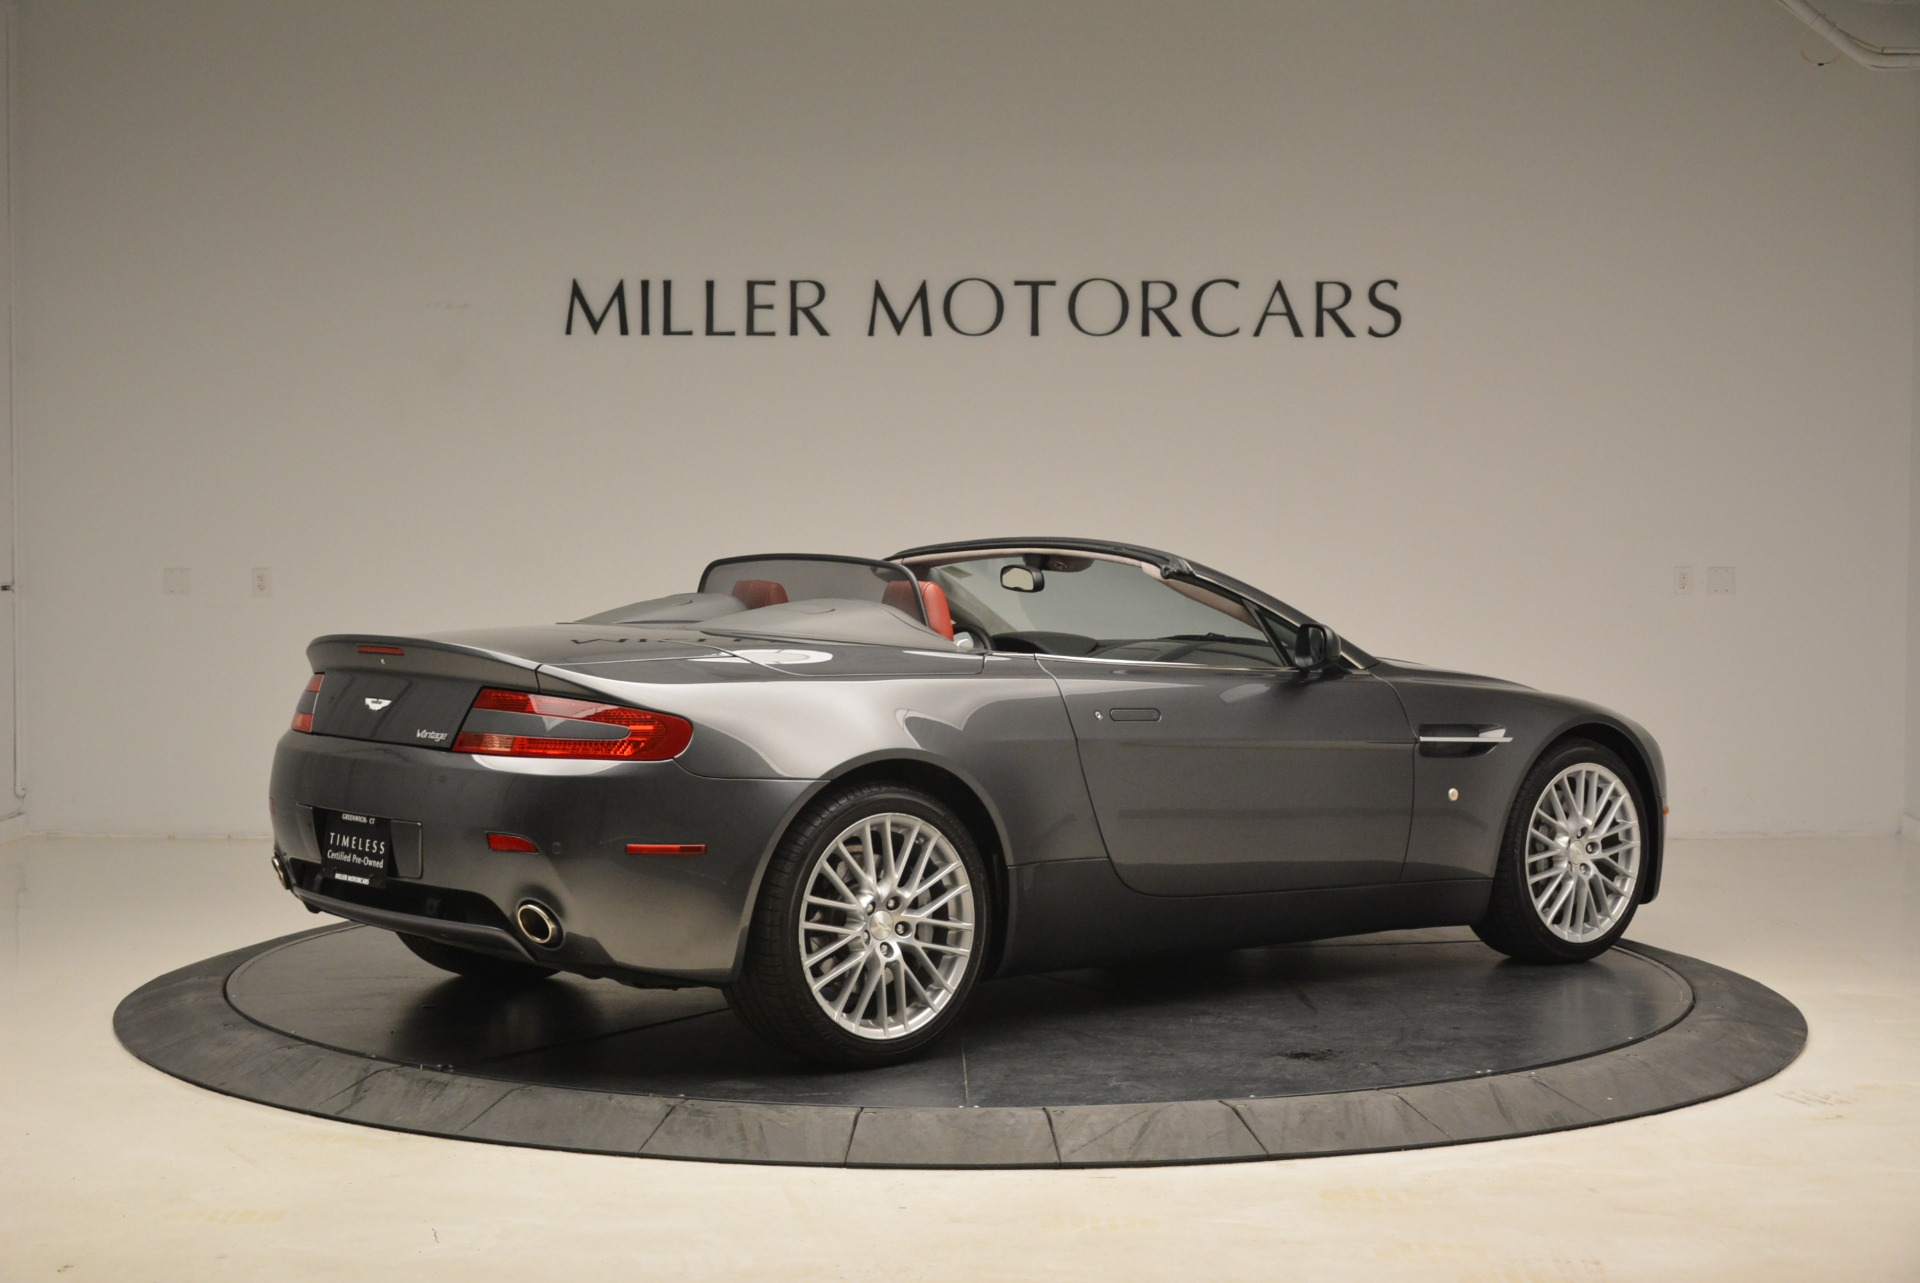 Used 2009 Aston Martin V8 Vantage Roadster For Sale In Greenwich, CT. Alfa Romeo of Greenwich, 7333 2123_p8